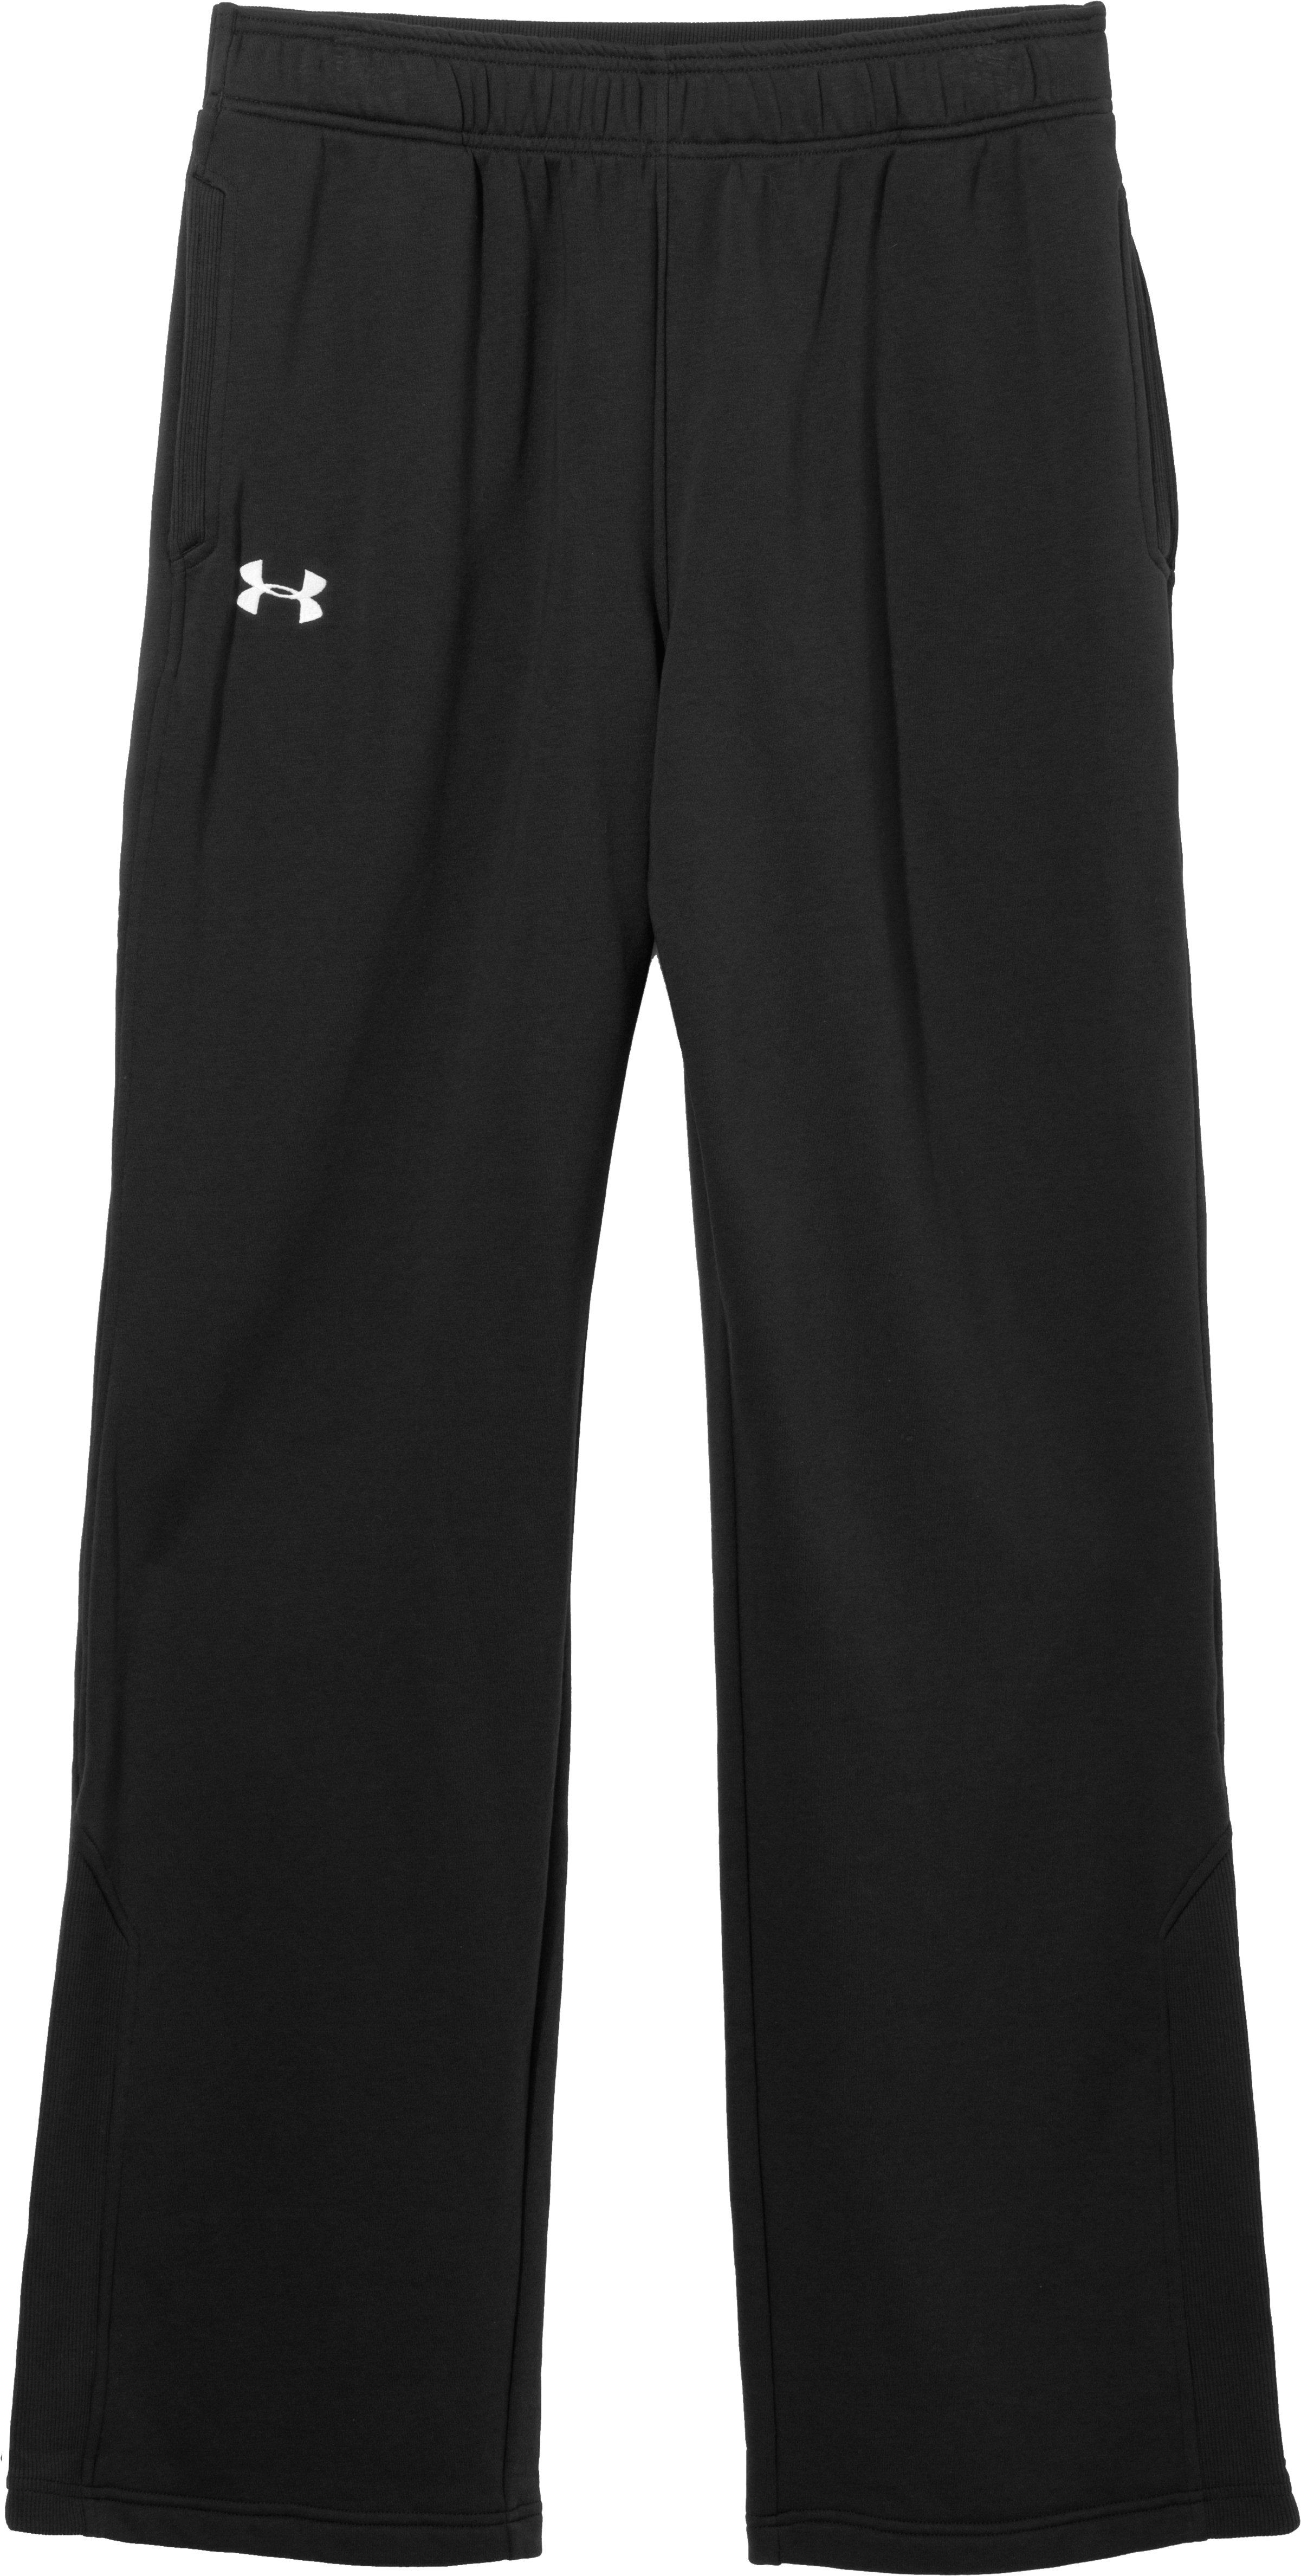 Men's Charged Cotton® Storm Sideline Pants, Black , Laydown